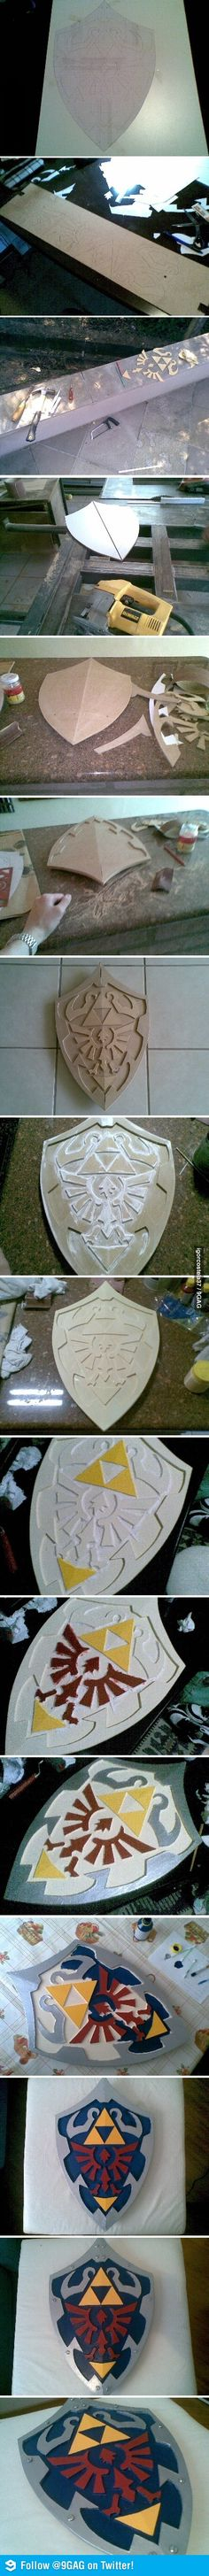 Zelda shield. Epic shield of awesome.